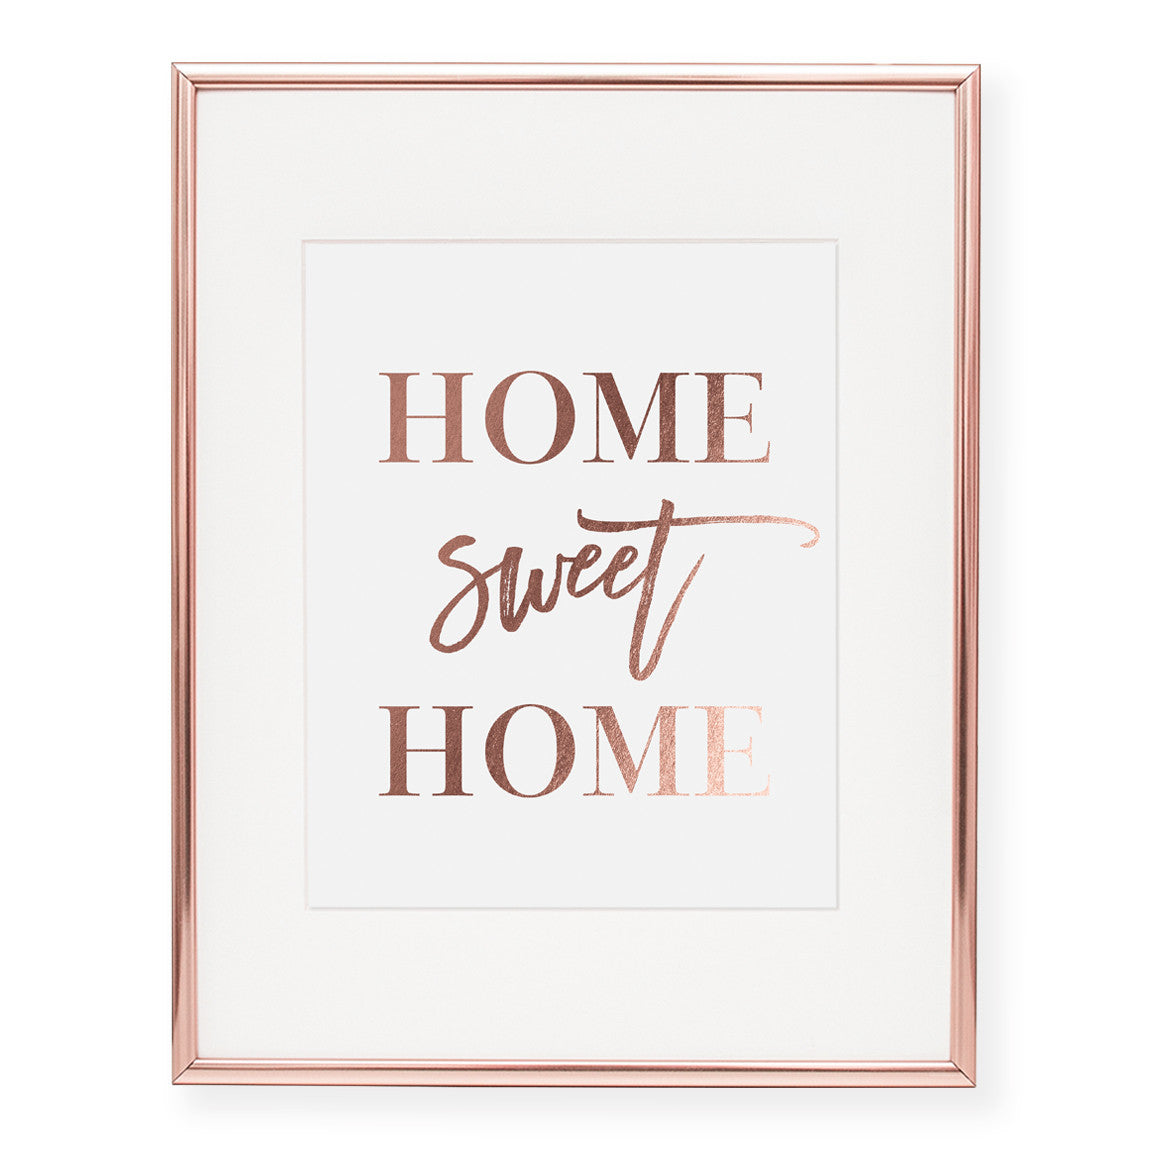 Home Sweet Home Foil Art Print